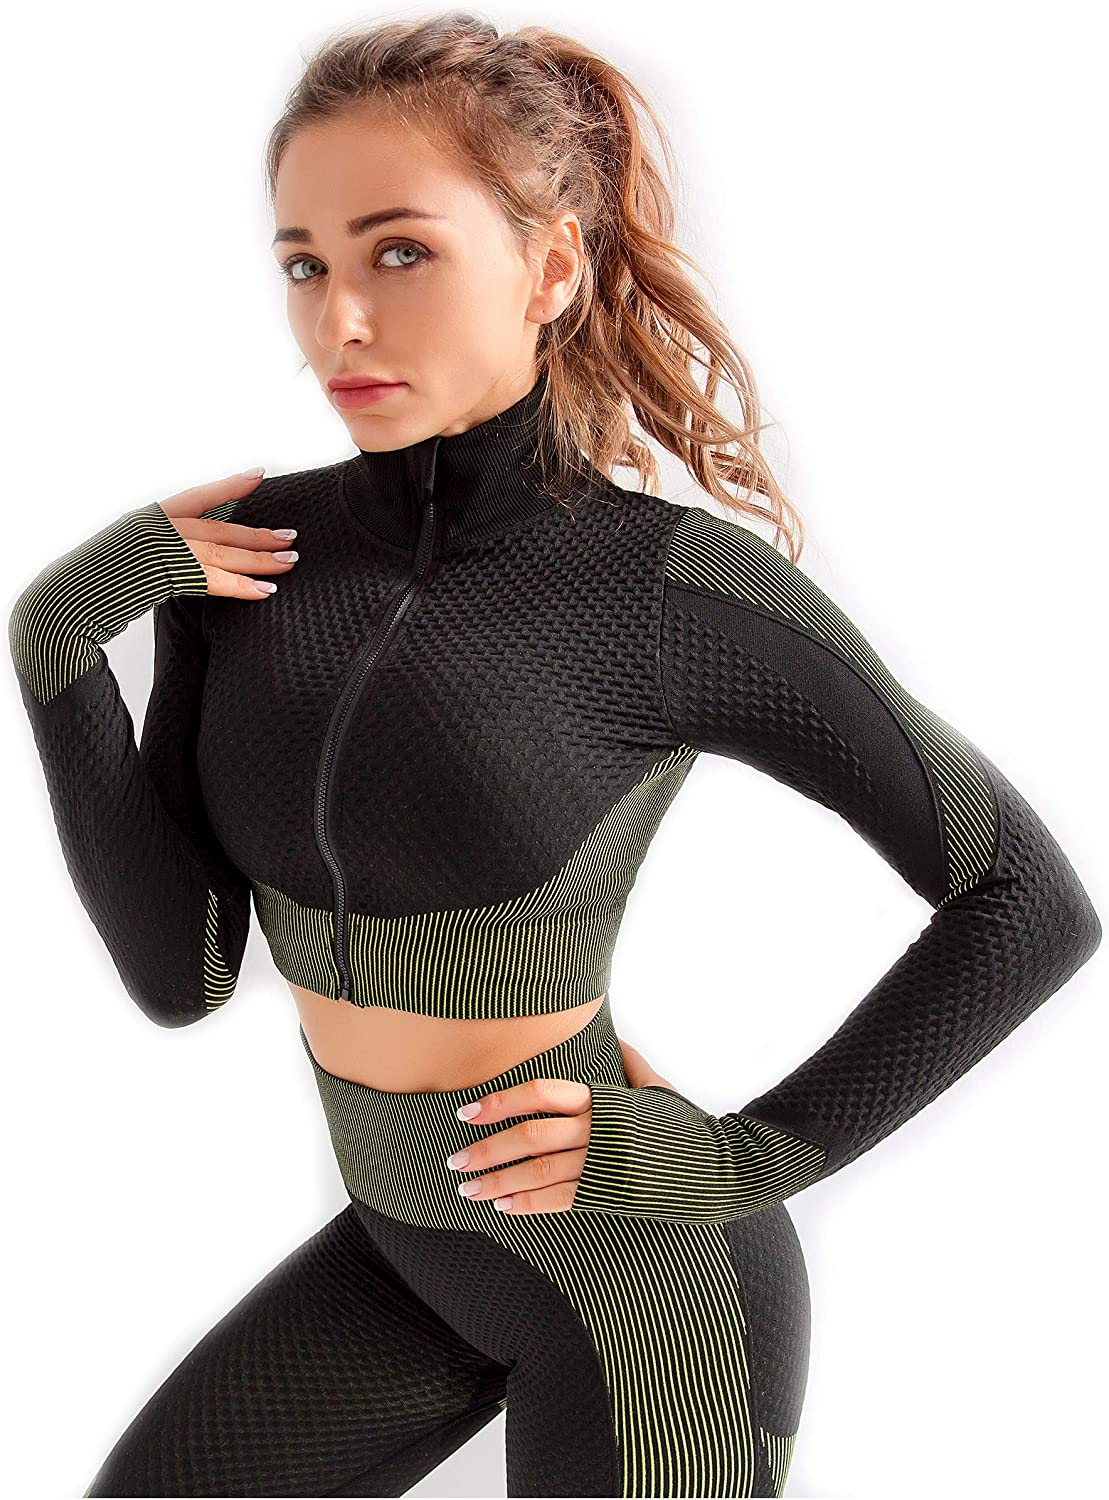 New product! New type Redqenting Women's Cute Crop Portland Mall Tops Seamless Sleeve Long Yoga